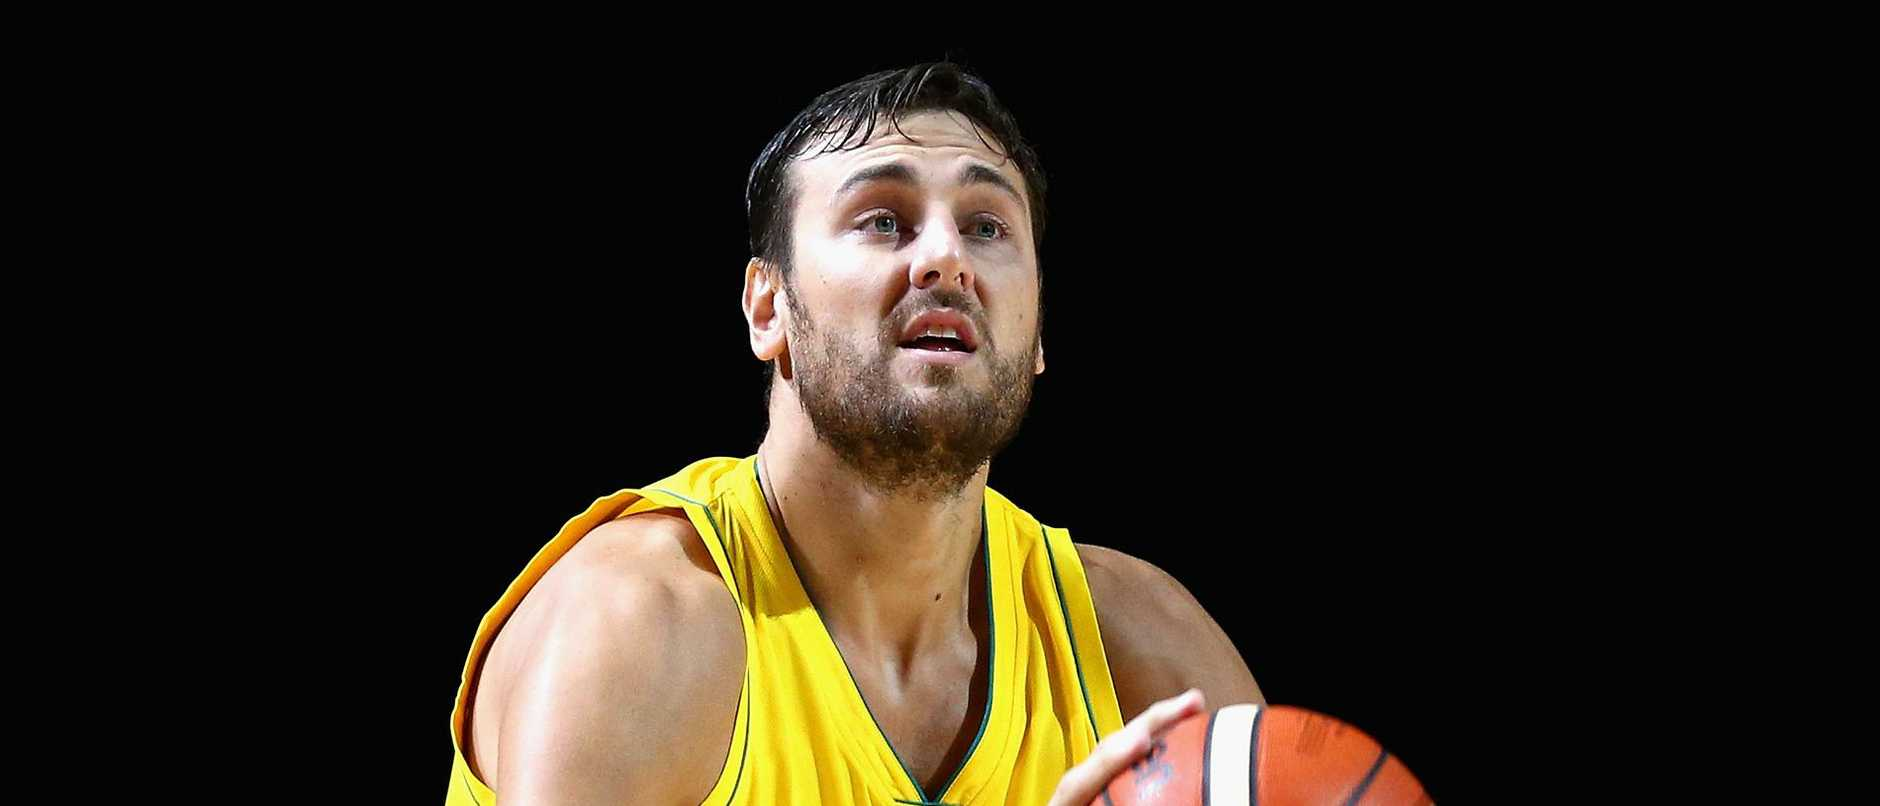 Andrew Bogut says the Boomers have plenty to play for at the World Cup with an Olympic berth on the line. Picture: Robert Prezioso/Getty Images